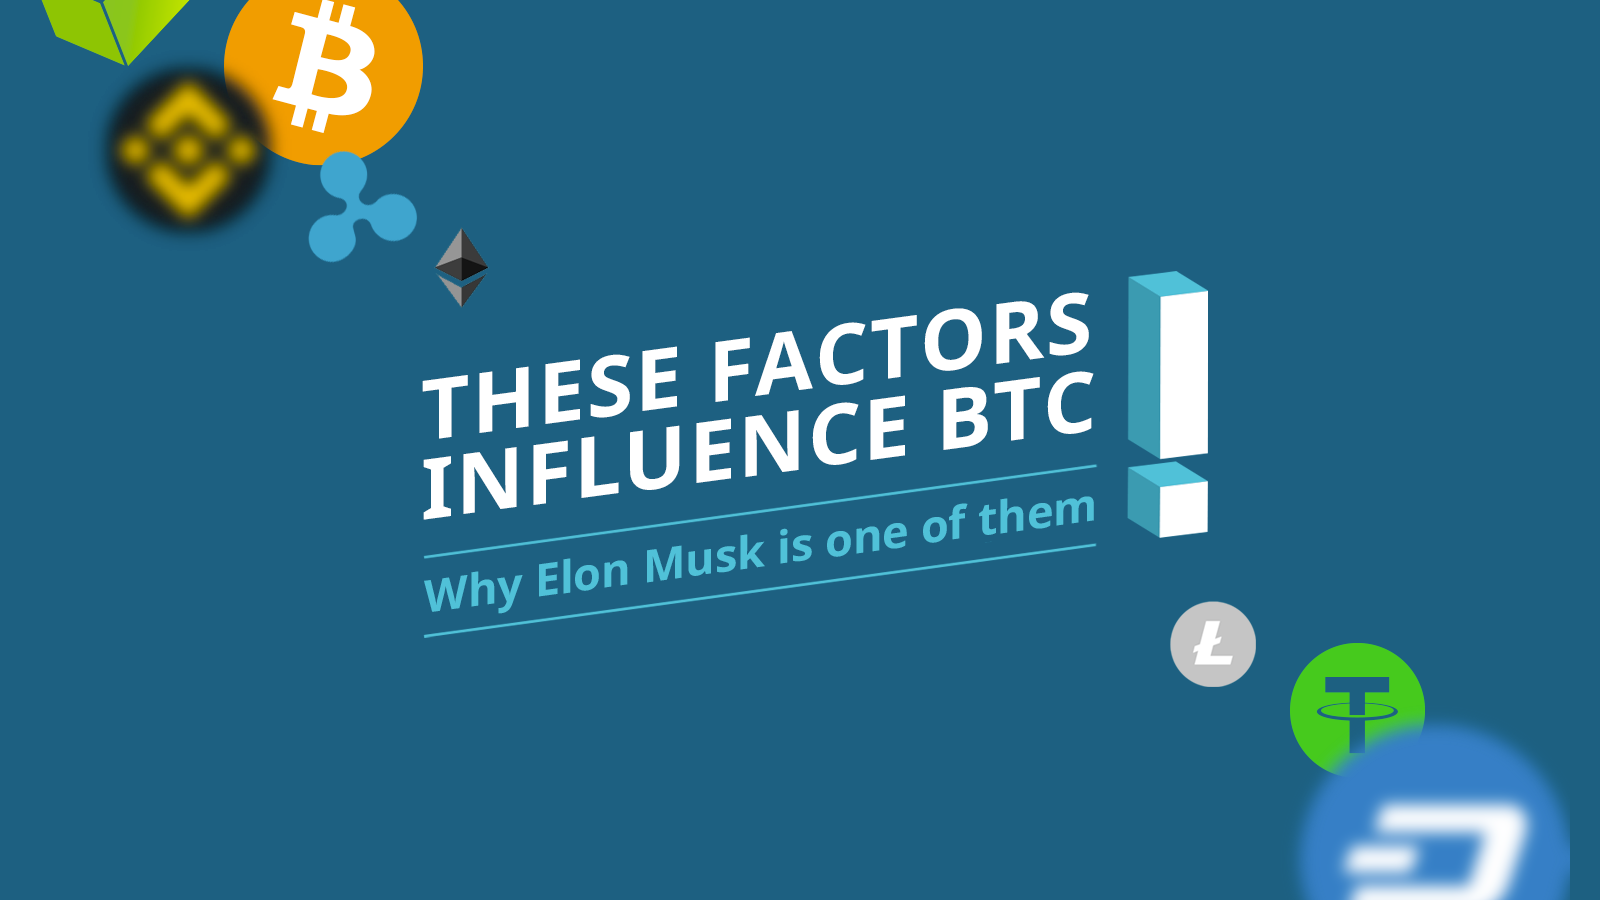 These factors influence the bitcoin (BTC) price: Why Elon Musk is one ofthem